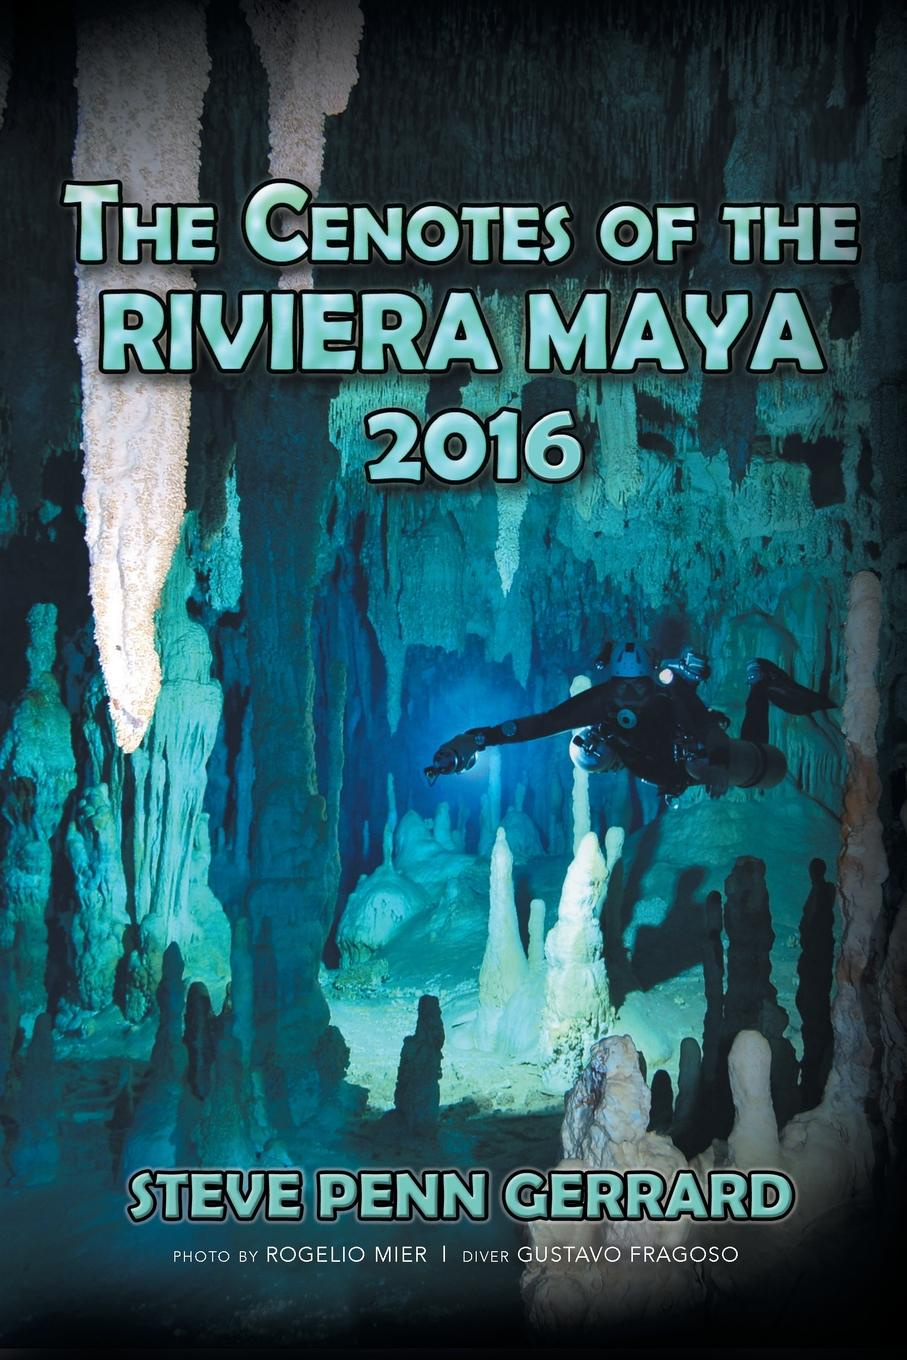 Steve Penn Gerrard The Cenotes of the Riviera Maya 2016 henri stierlin the maya palaces and pyramids of the rainforest